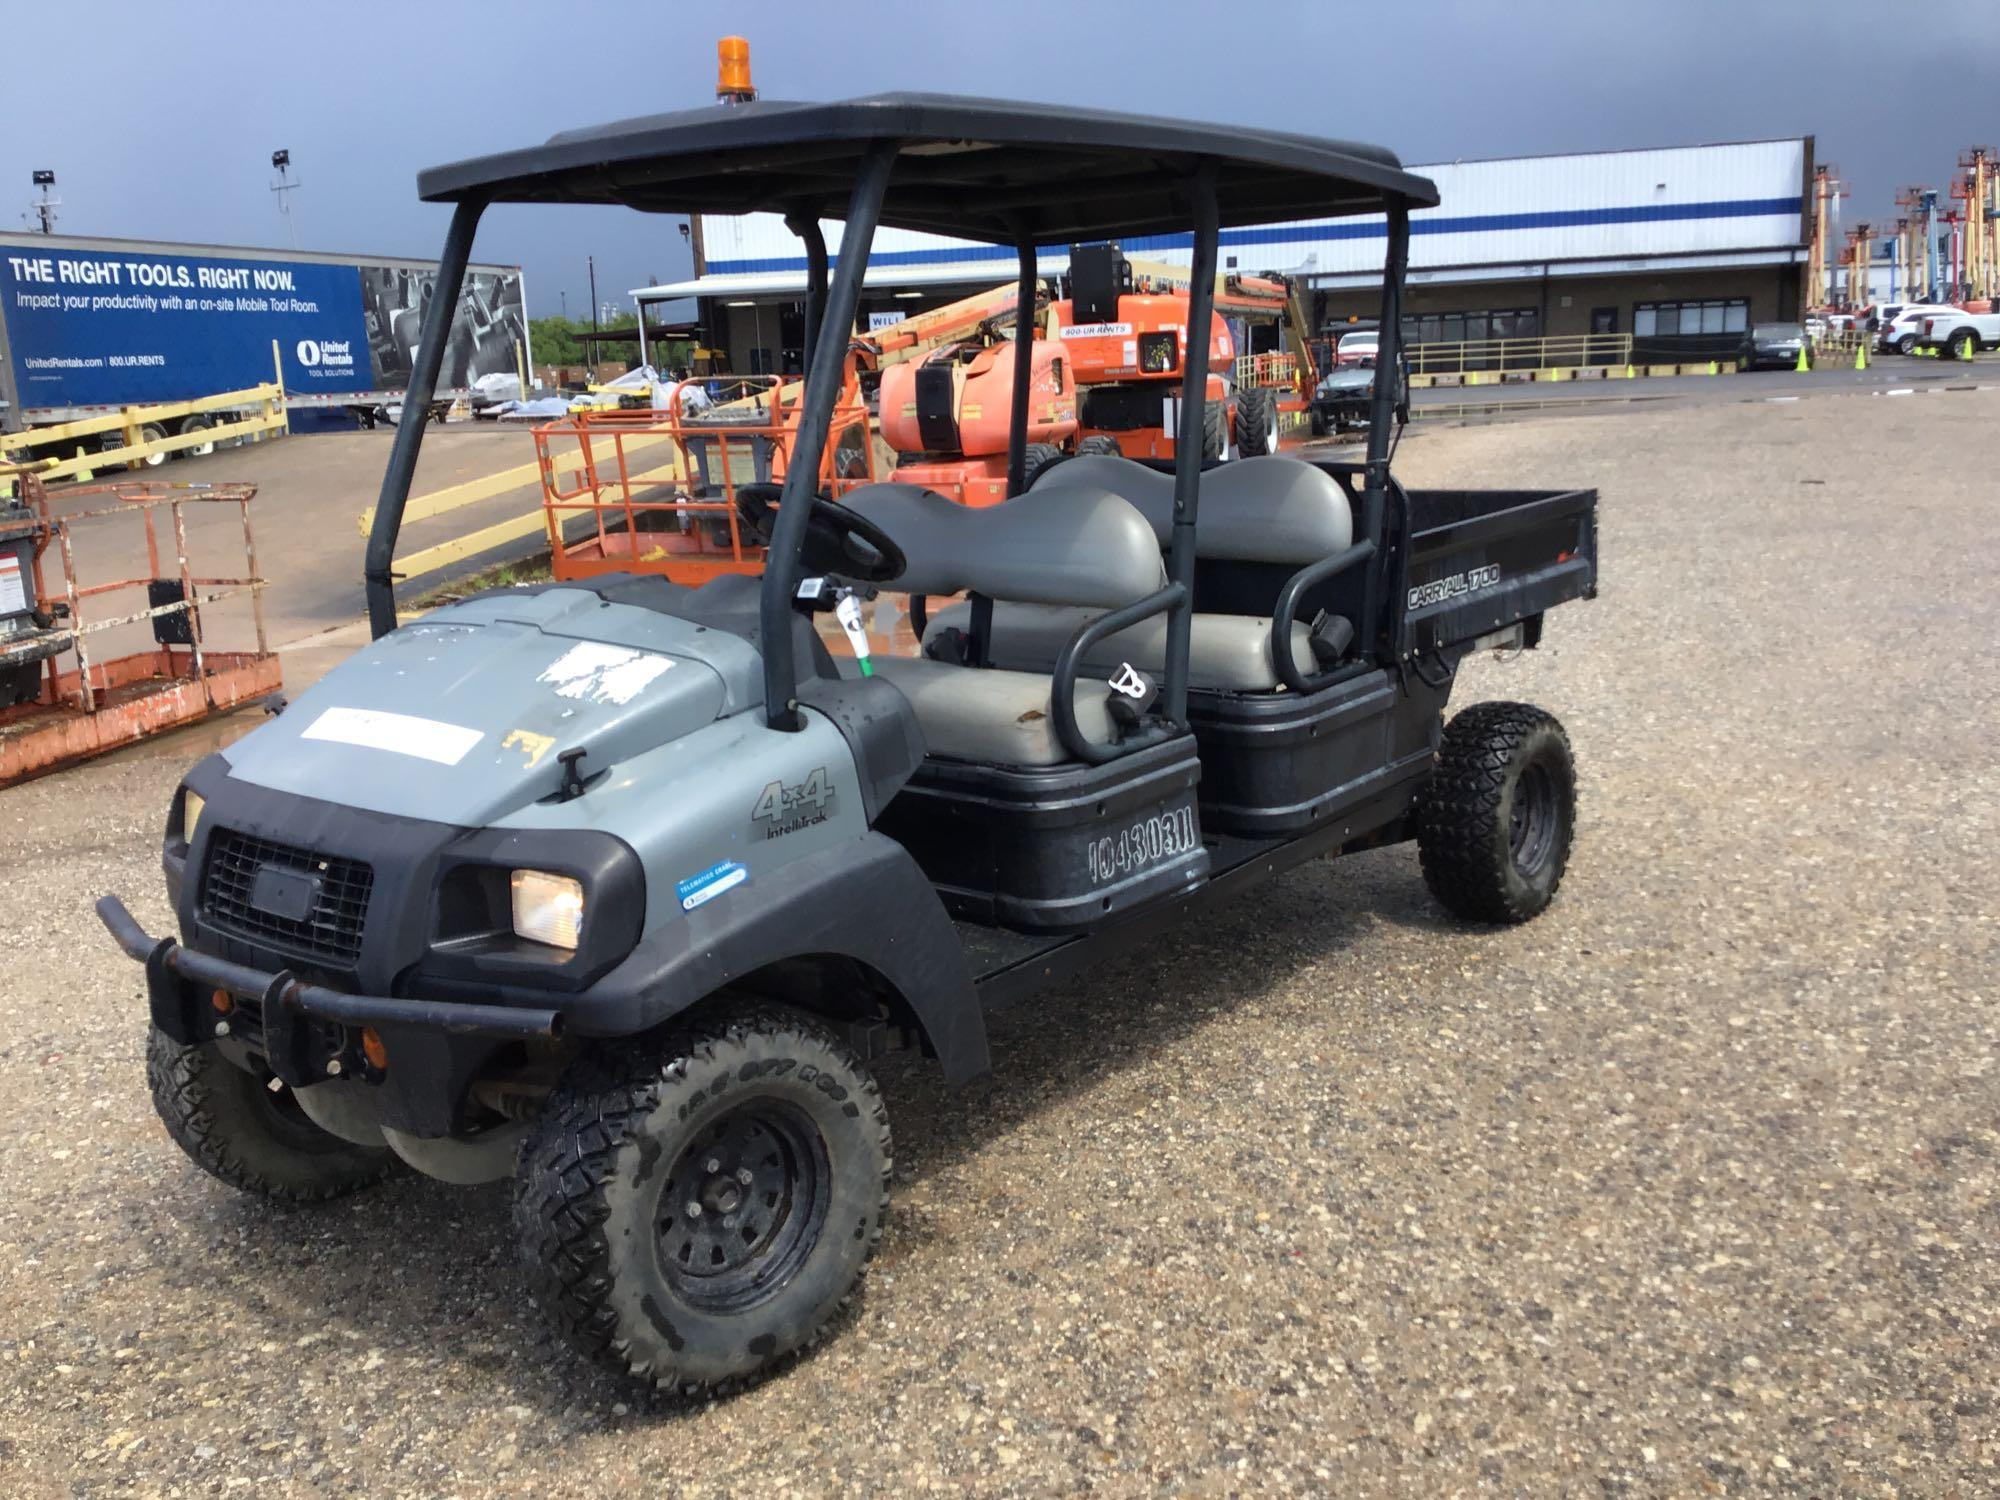 2015 CLUB CAR CARRYALL 1700 UTILITY VEHICLE